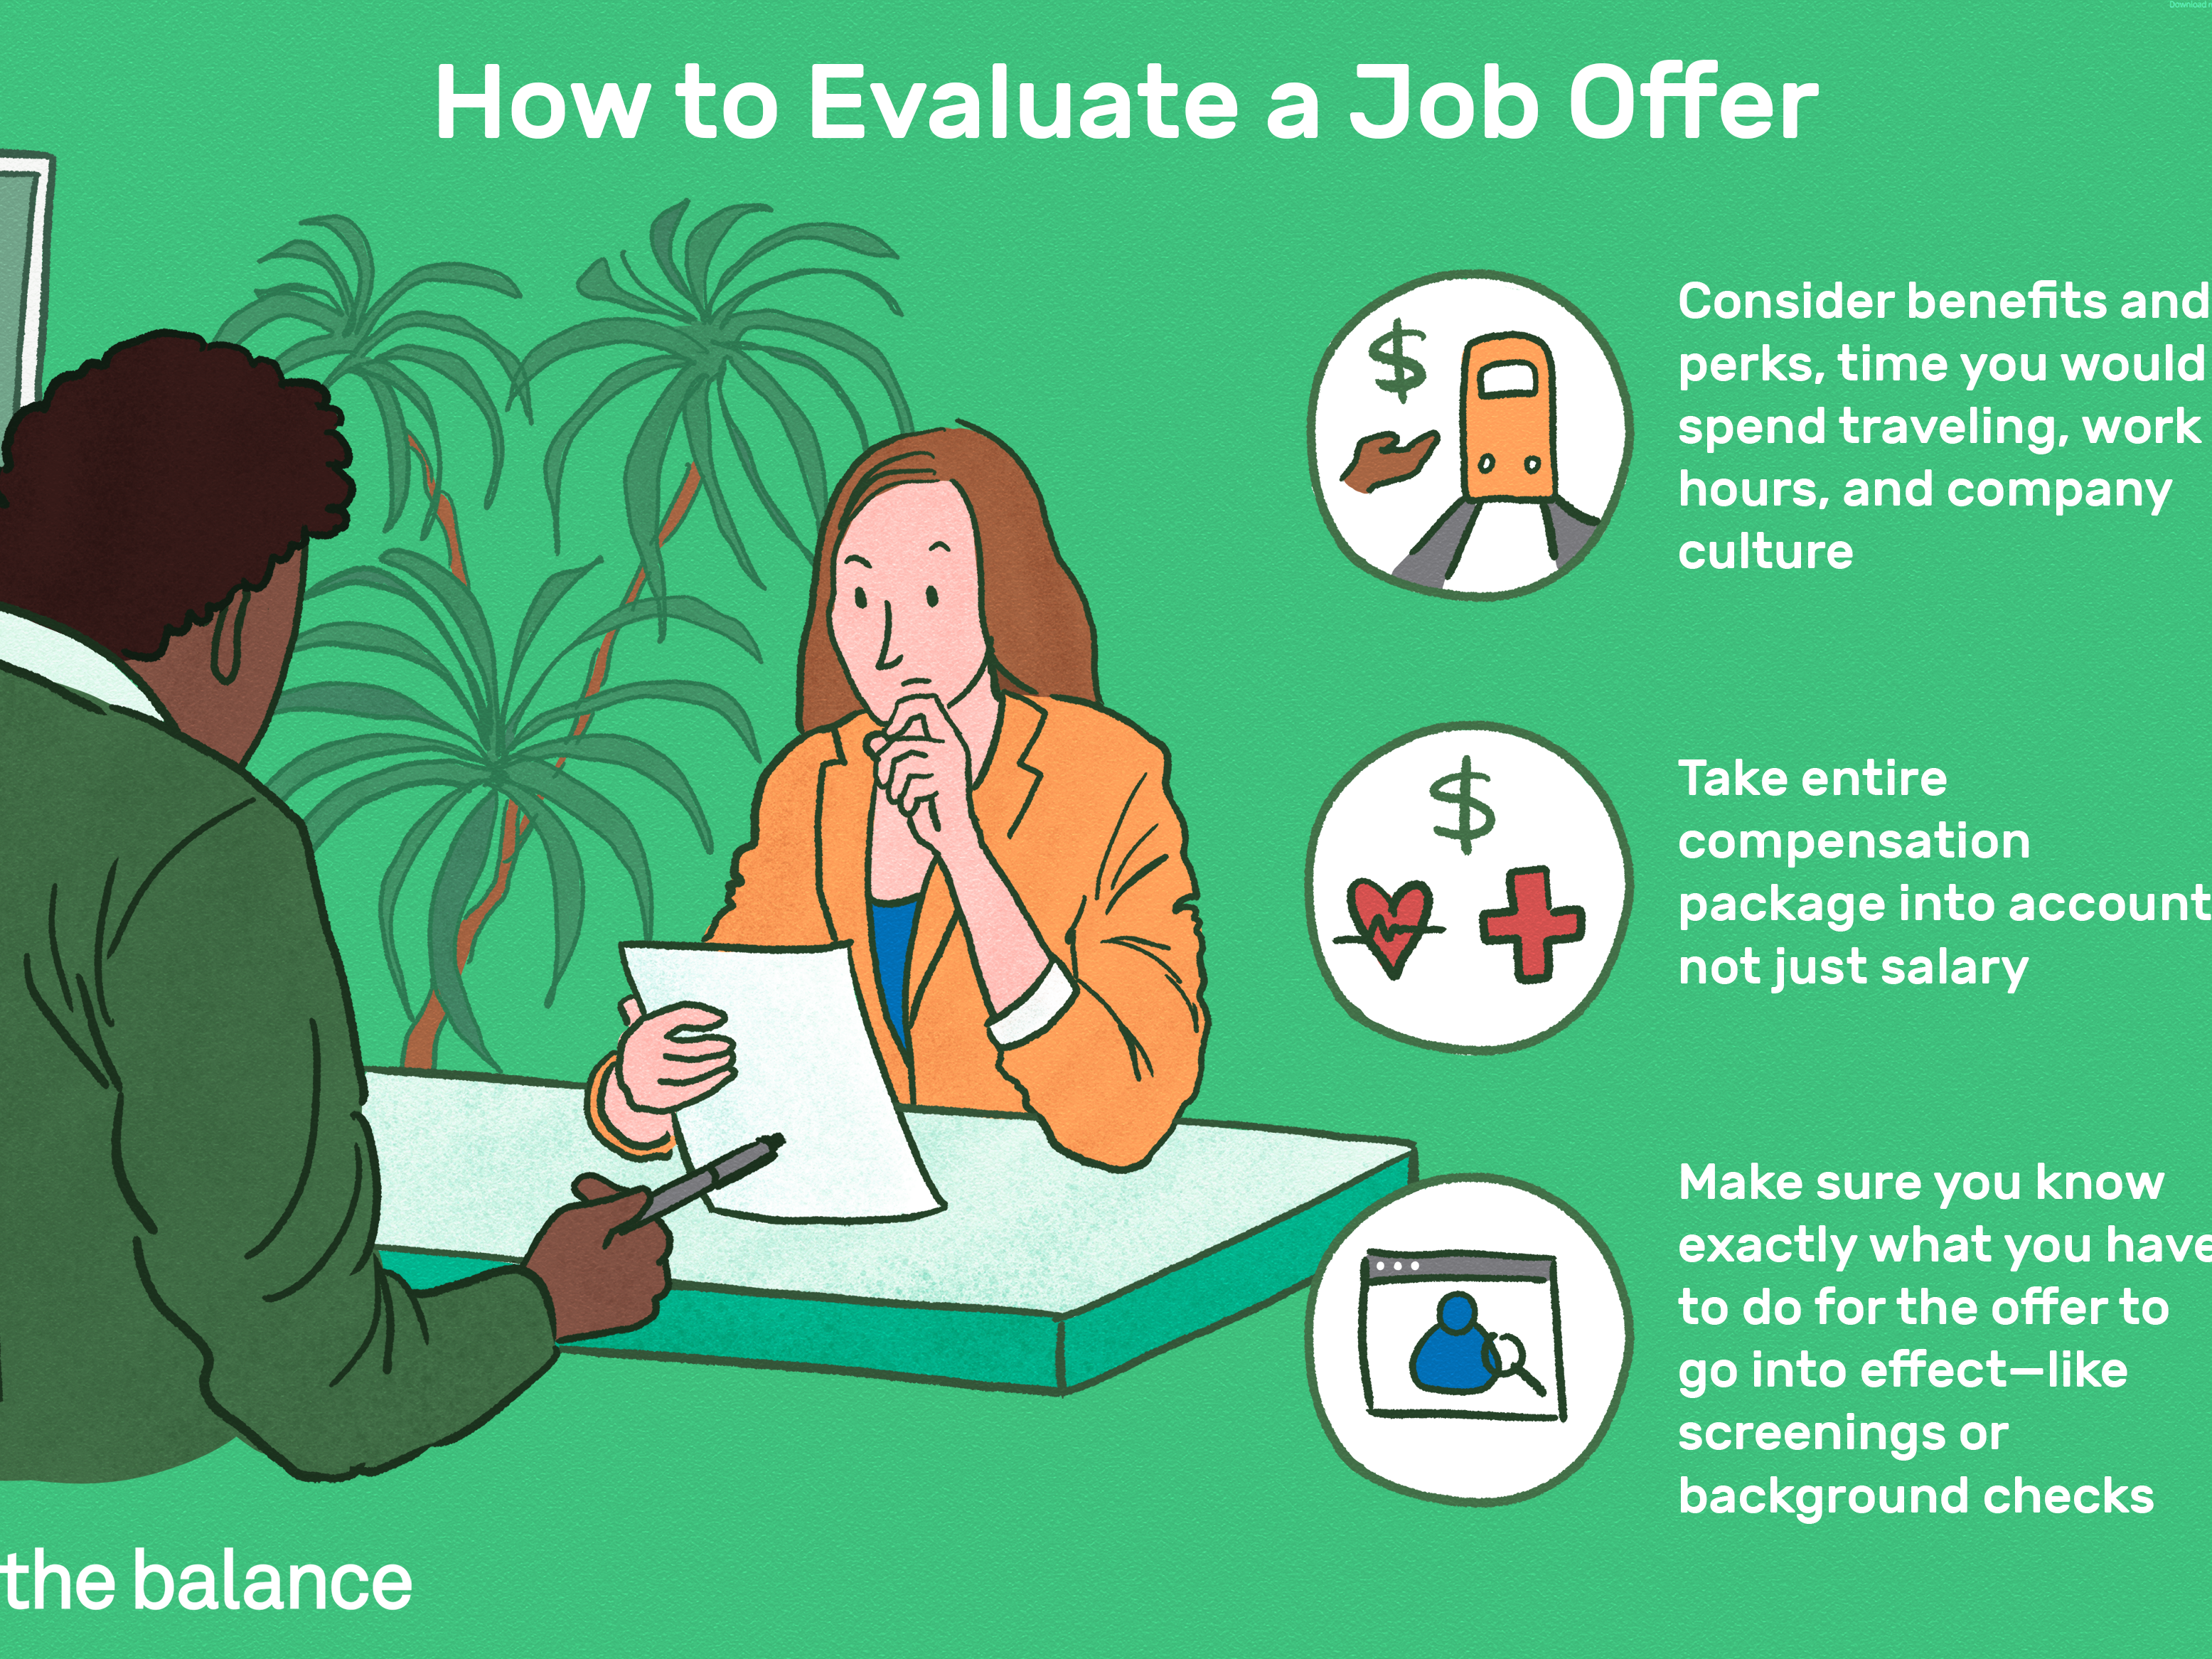 Job Offers: How to Negotiate, Accept, or Decline a Job Offer